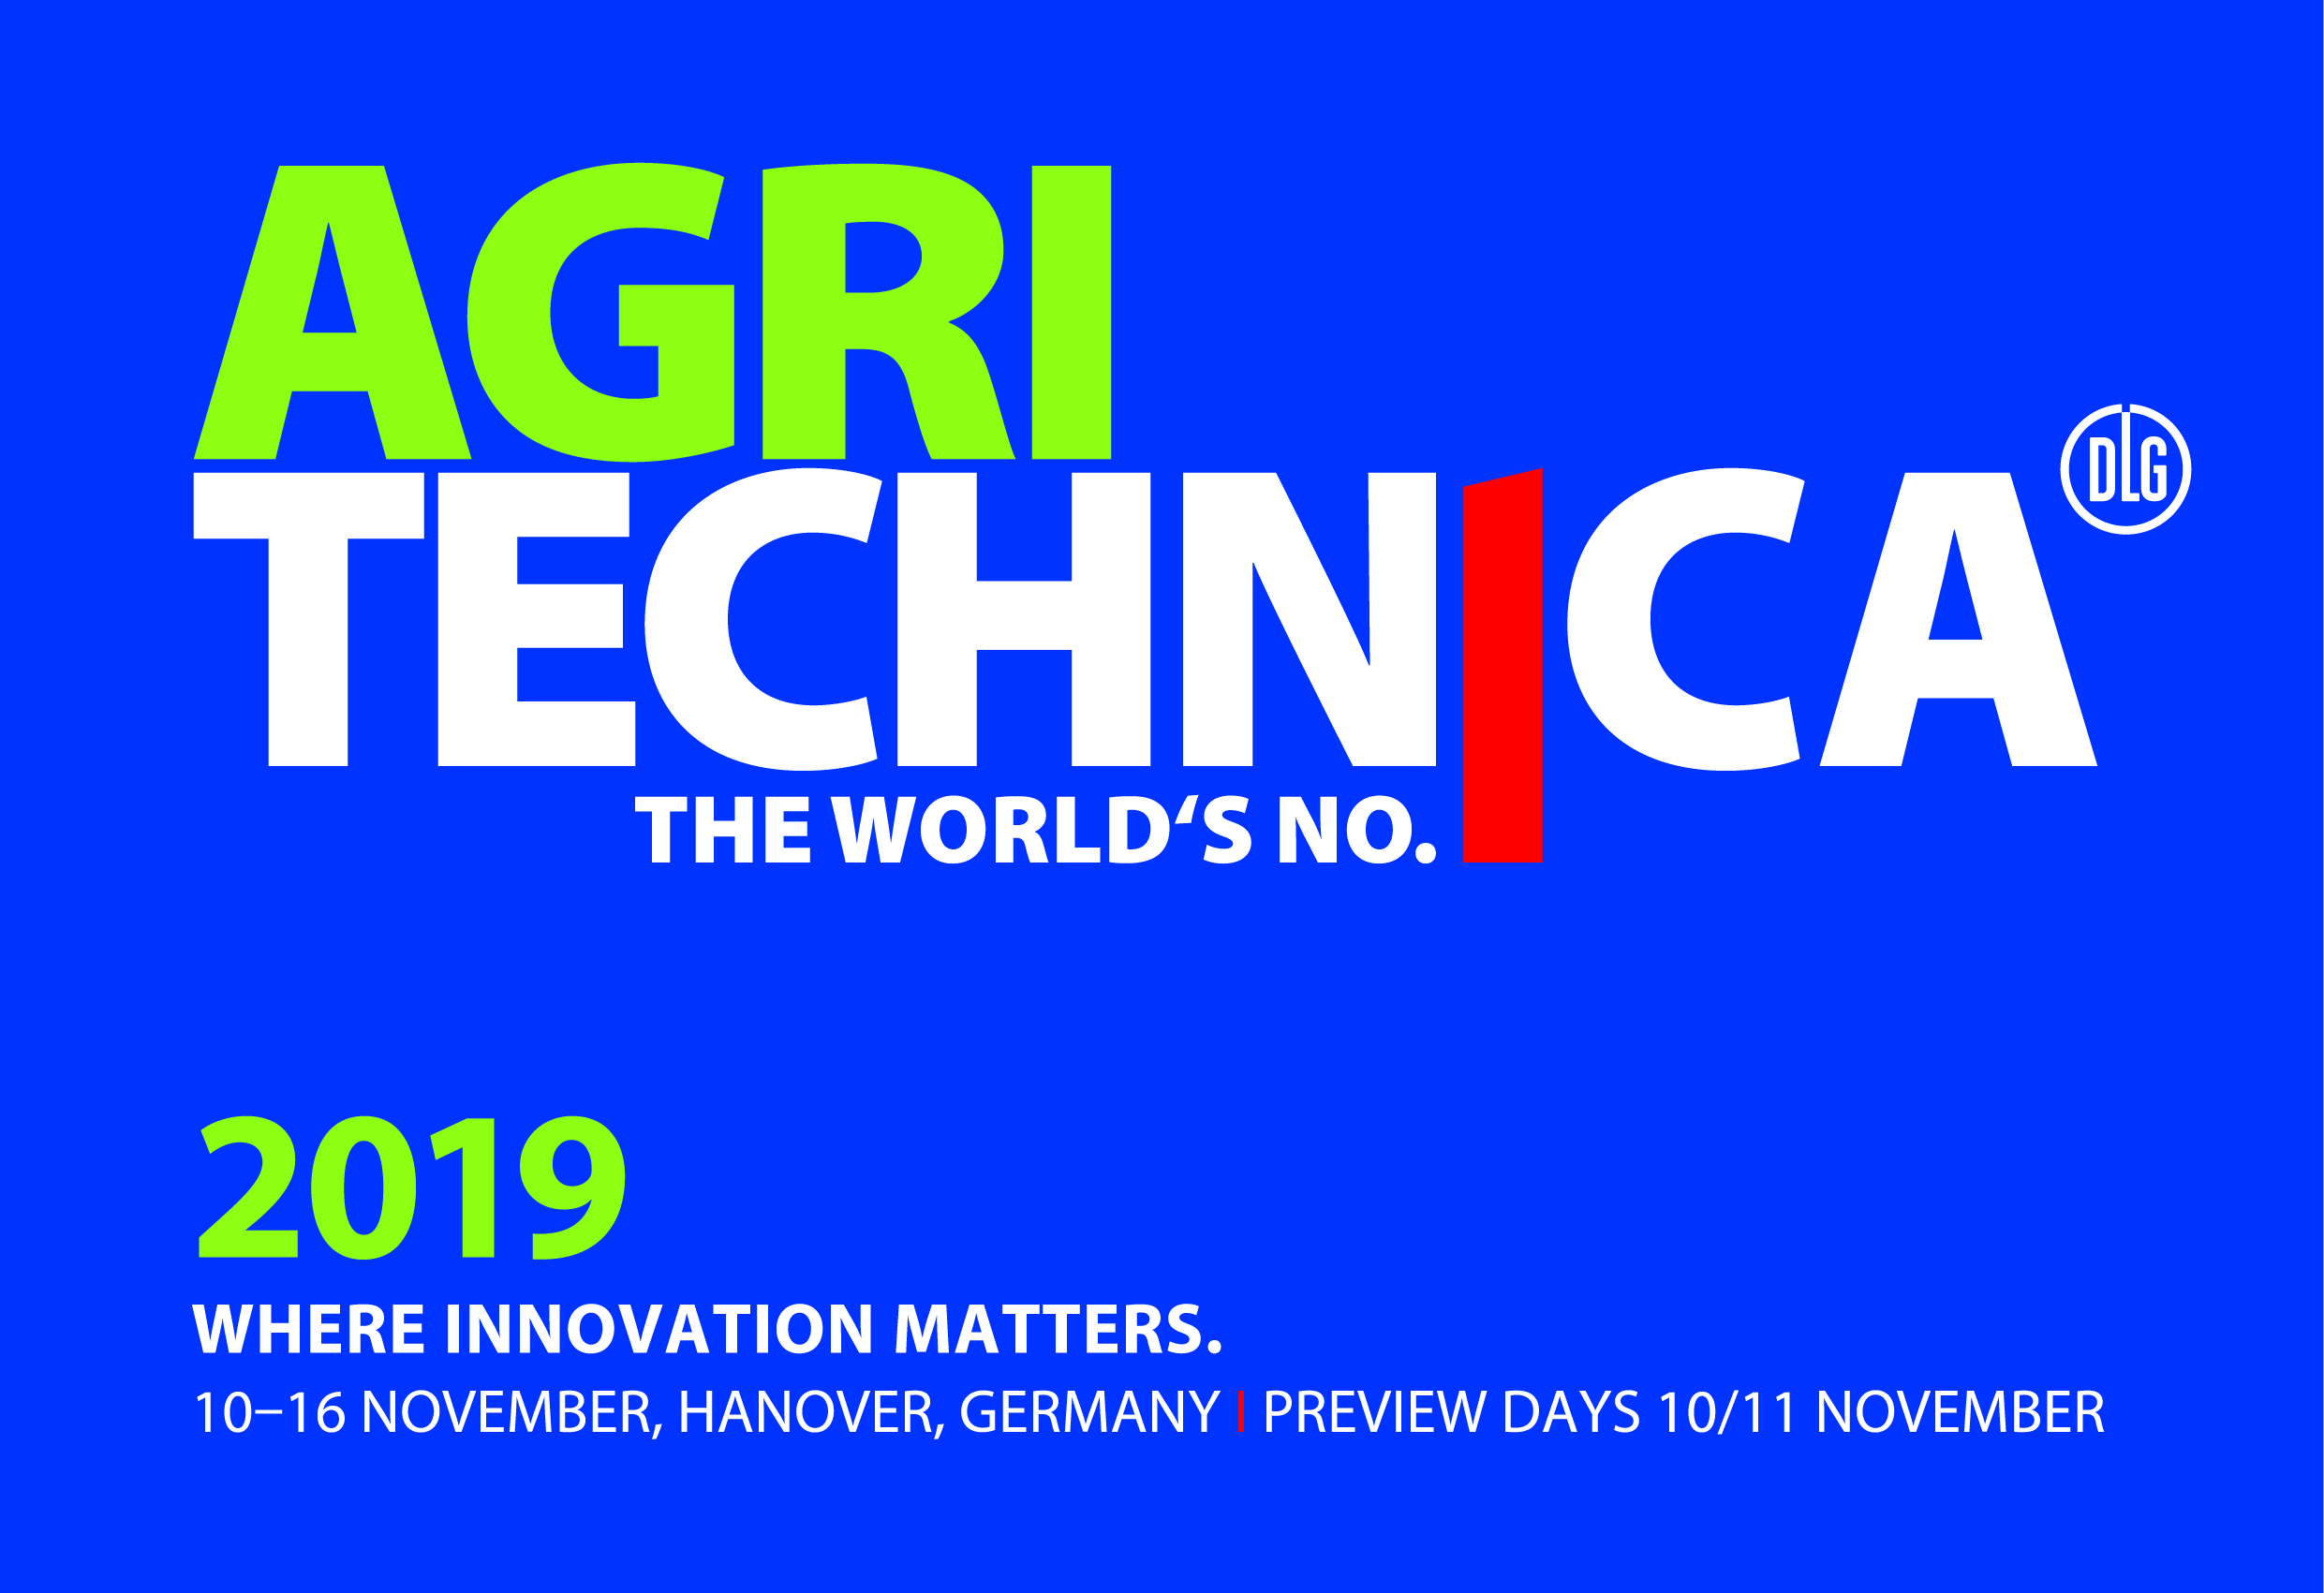 We are excited to be exhibiting at Agritechnica 2019!